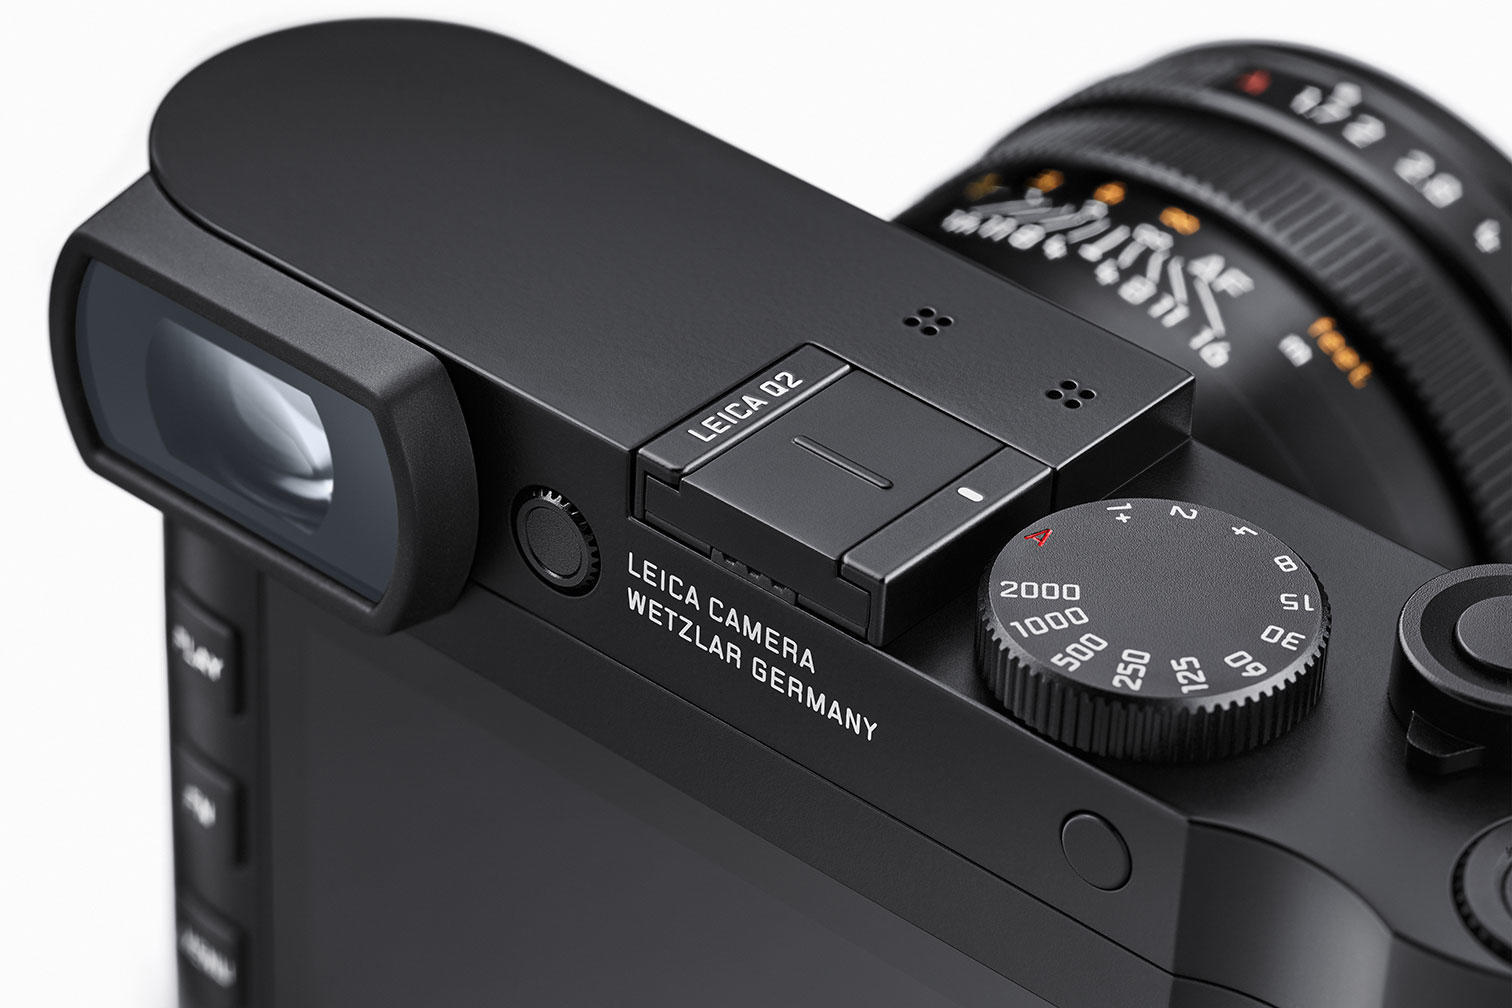 leica q2 new oled viewfinder